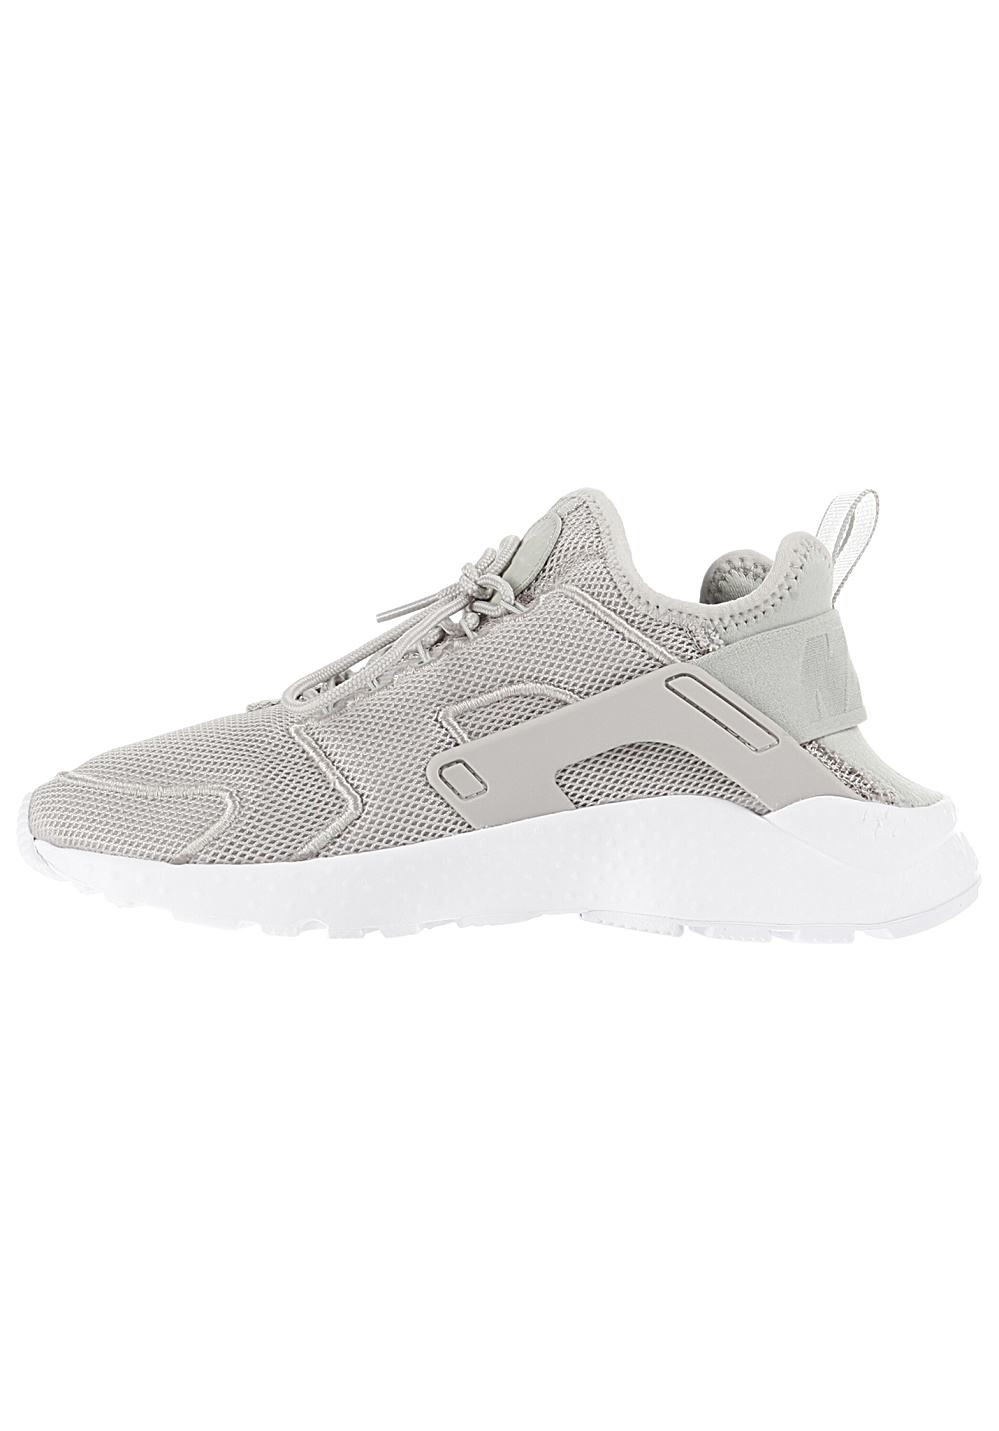 a2734872efc Next. -30%. NIKE SPORTSWEAR. Air Huarache Run Ultra BR - Sneakers ...